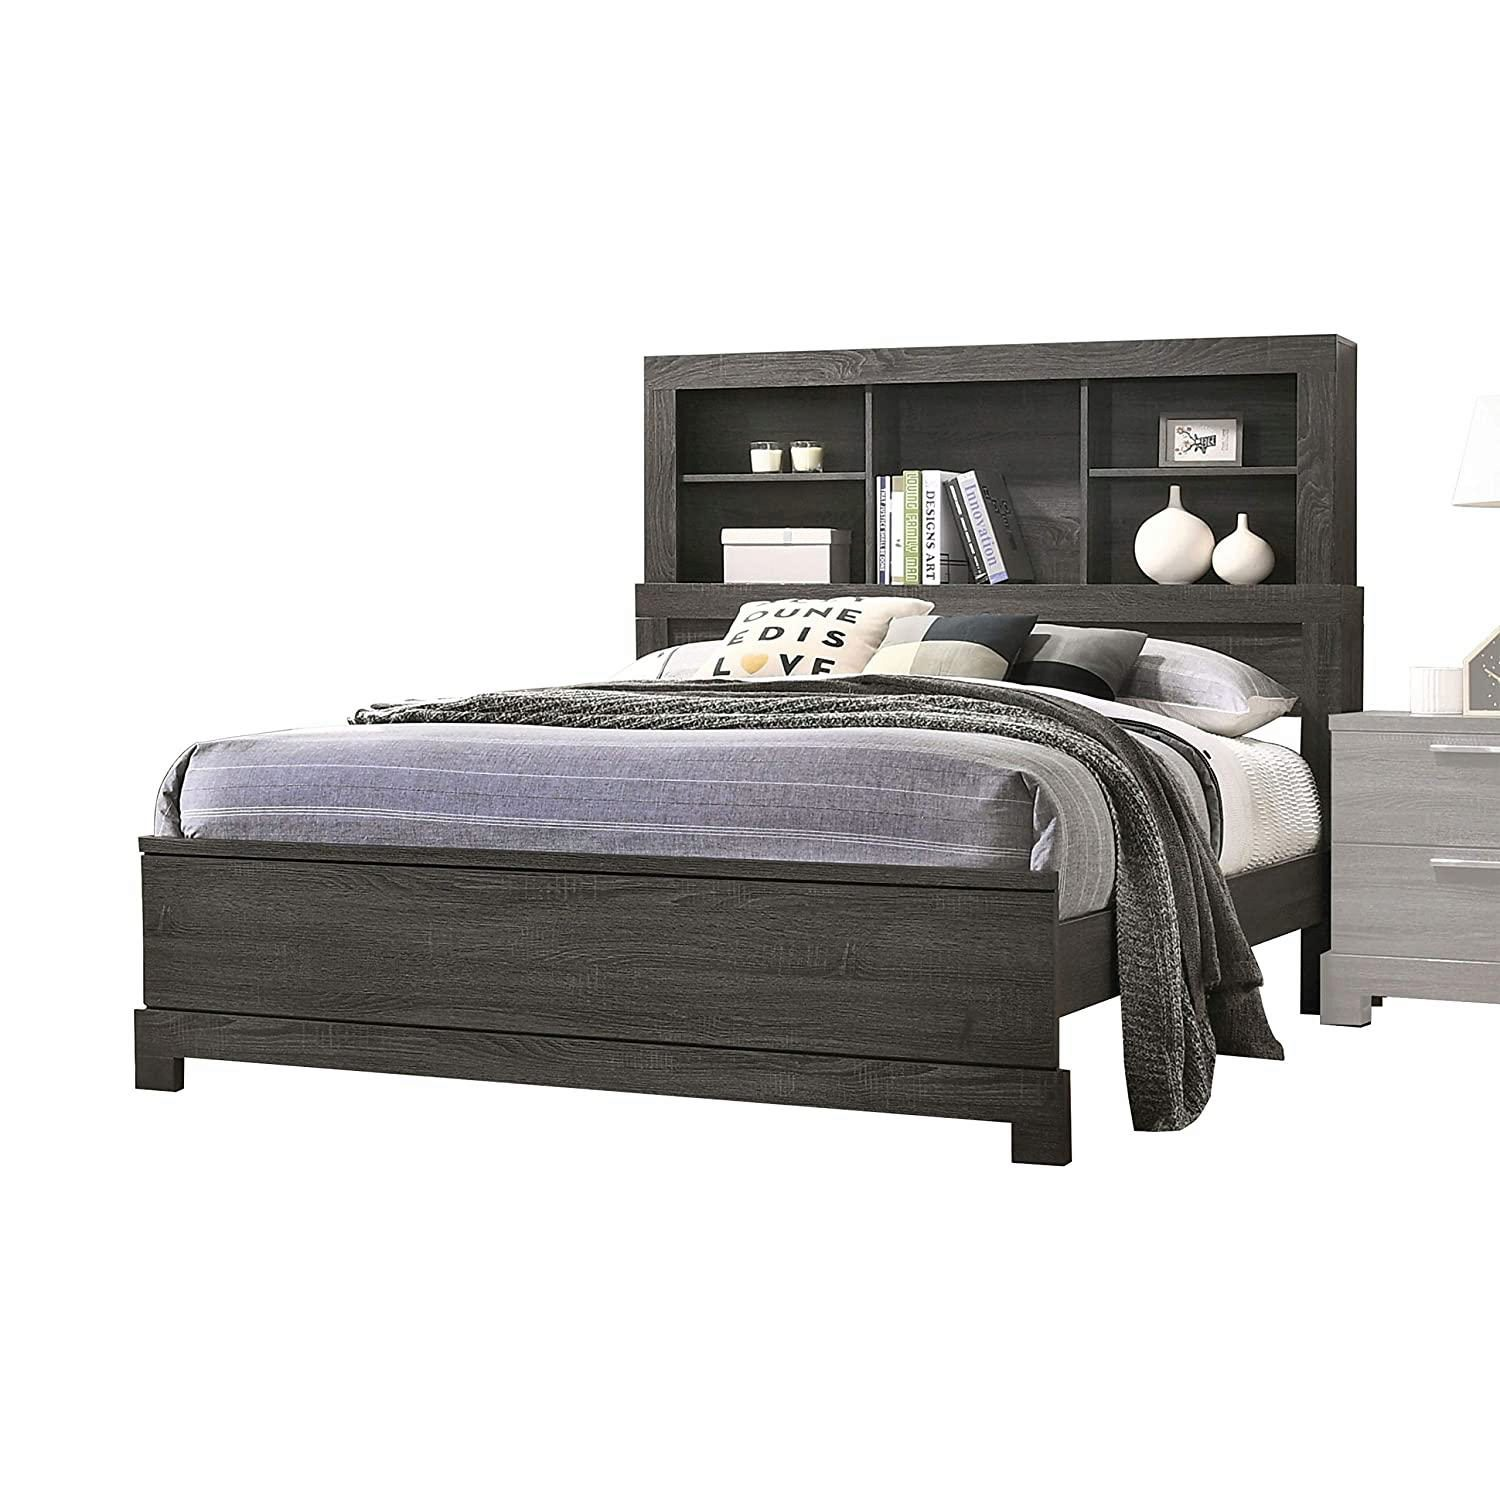 Transitional Gray Finish Bookcase Storage Headboard Queen Bed Lantha 22030q Acme 22030q